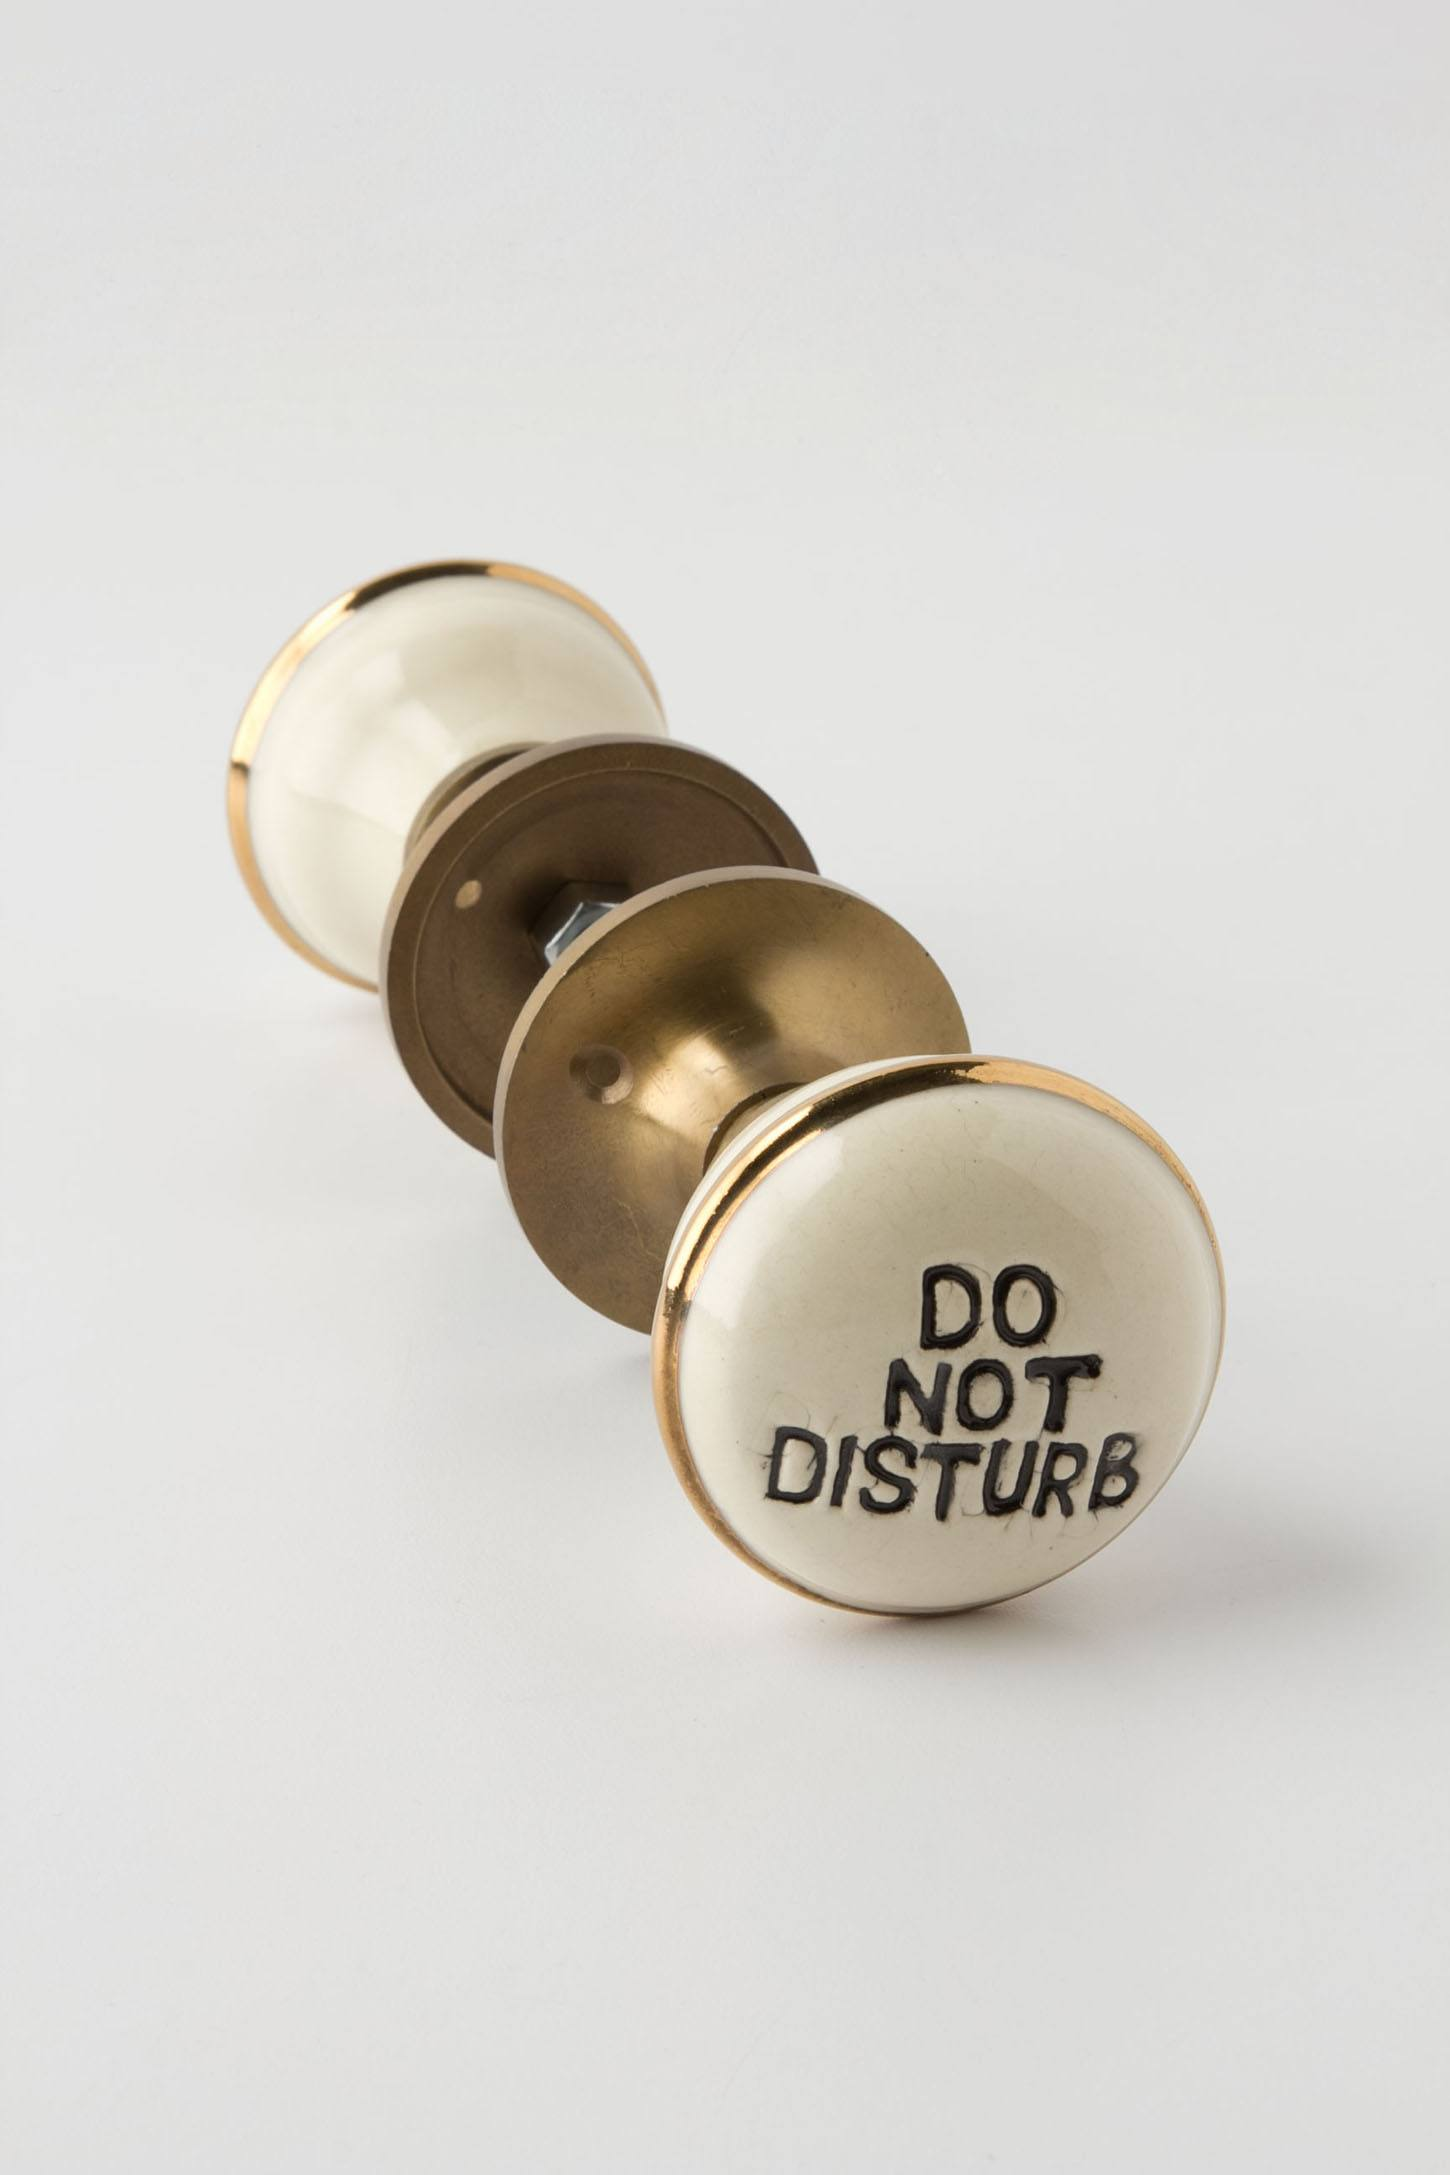 Slide View: 1: Do Not Disturb Doorknob